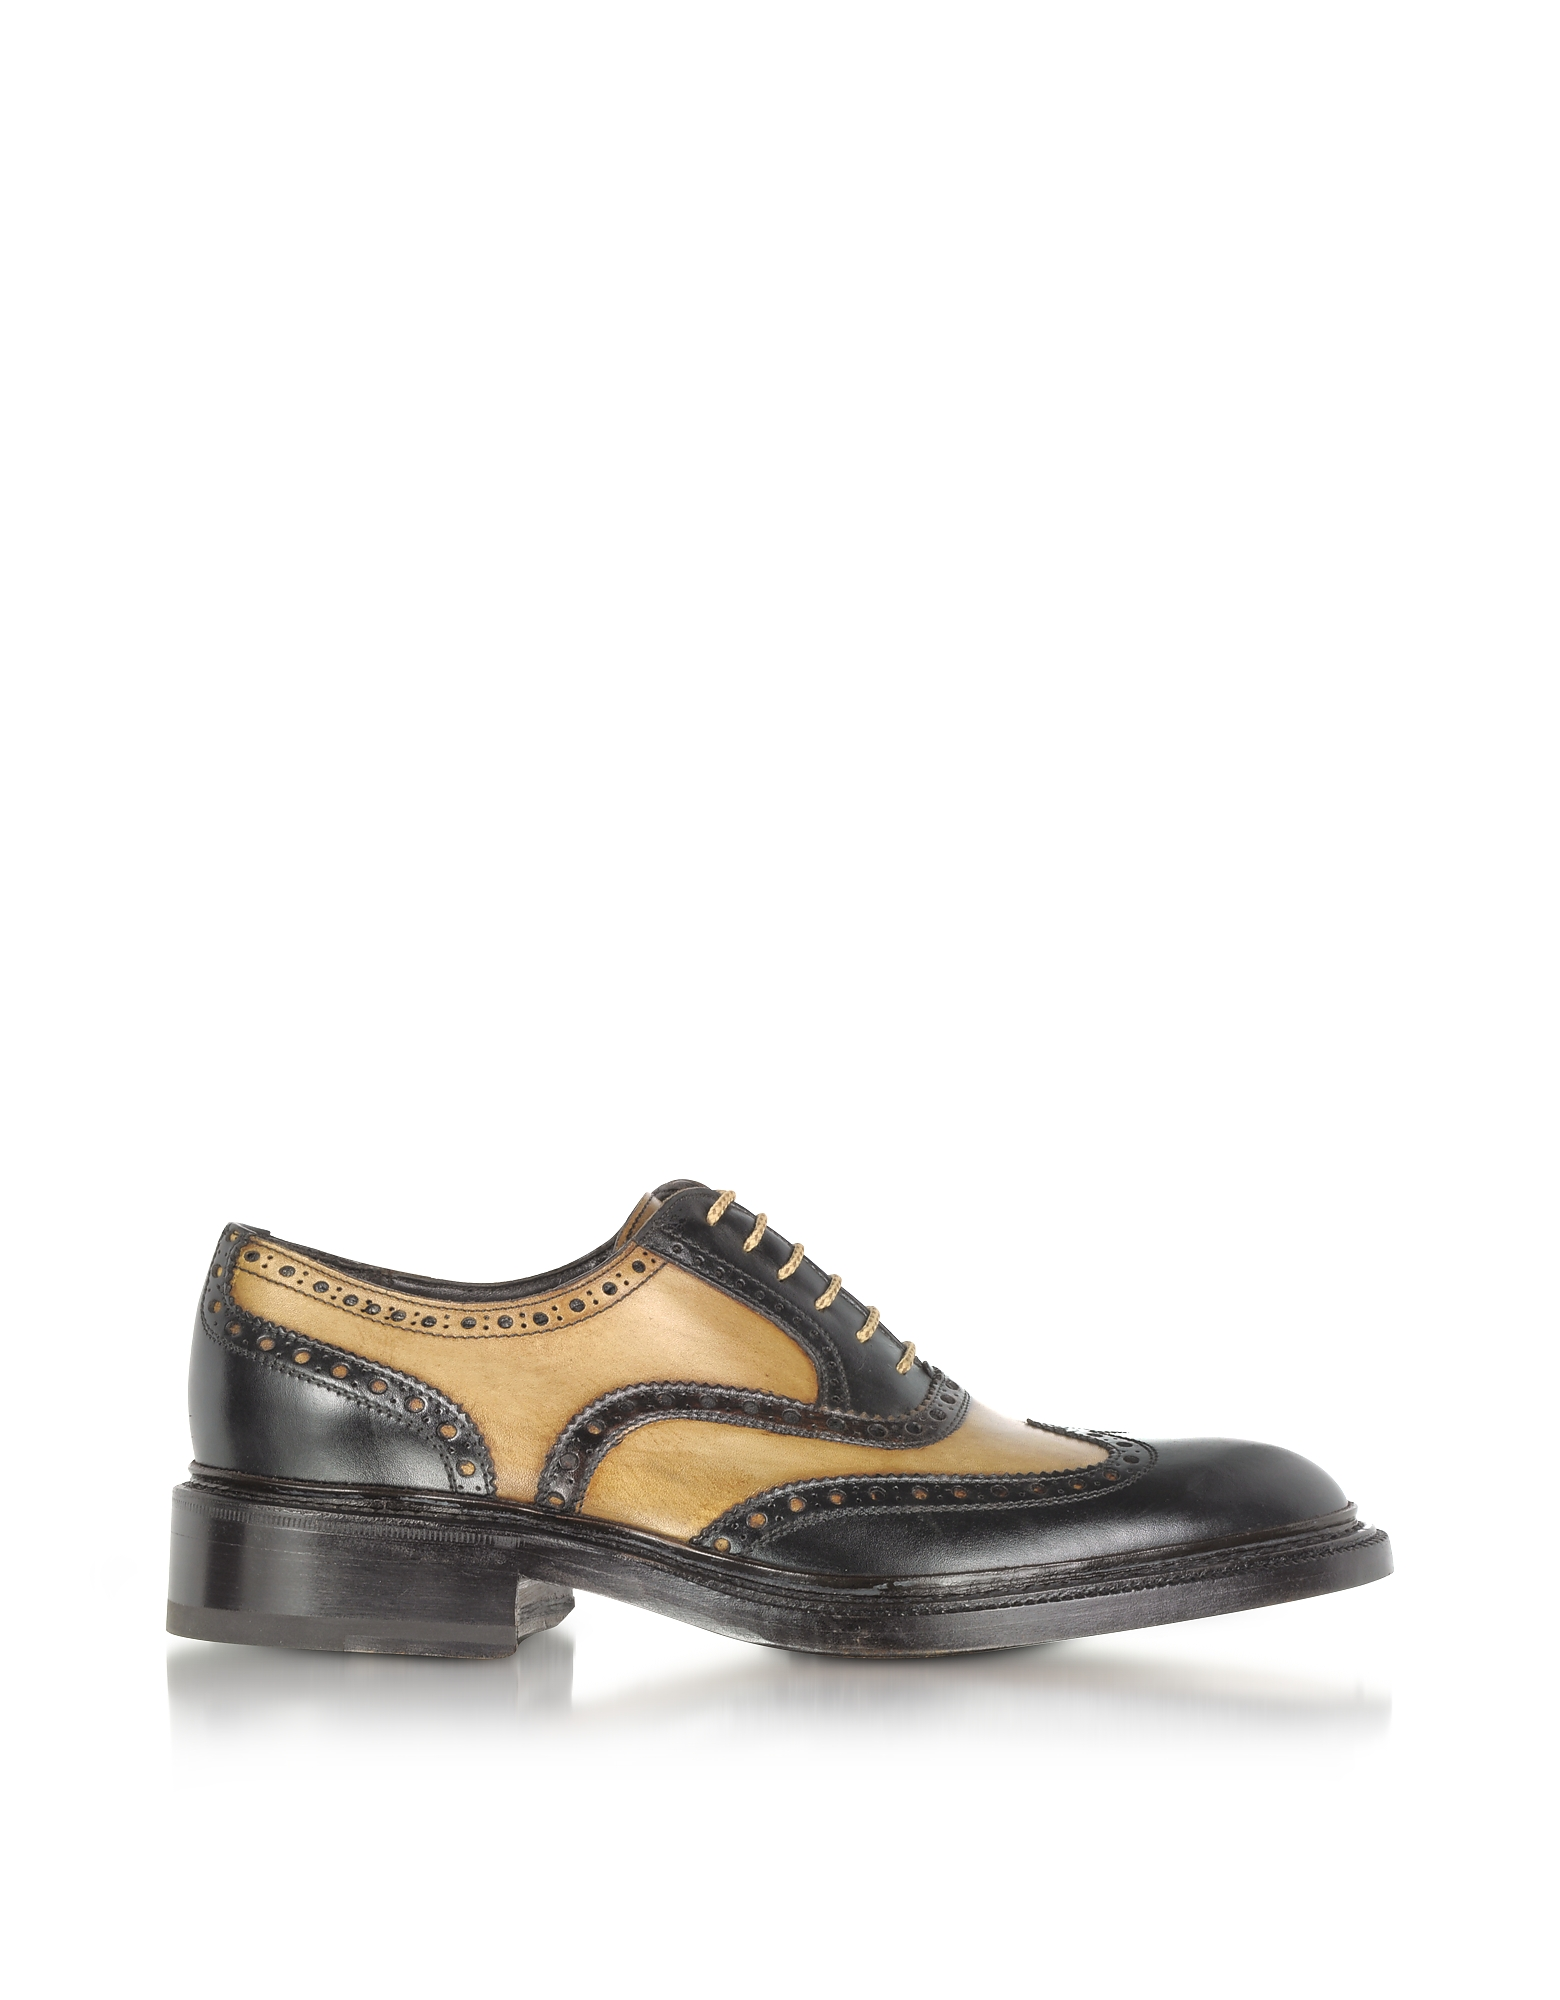 1920s Gangster Costume- How to Dress Like Al Capone Boardwalk Empire Forzieri  Shoes Italian Handcrafted Two-tone Wingtip Oxford Shoes $924.00 AT vintagedancer.com